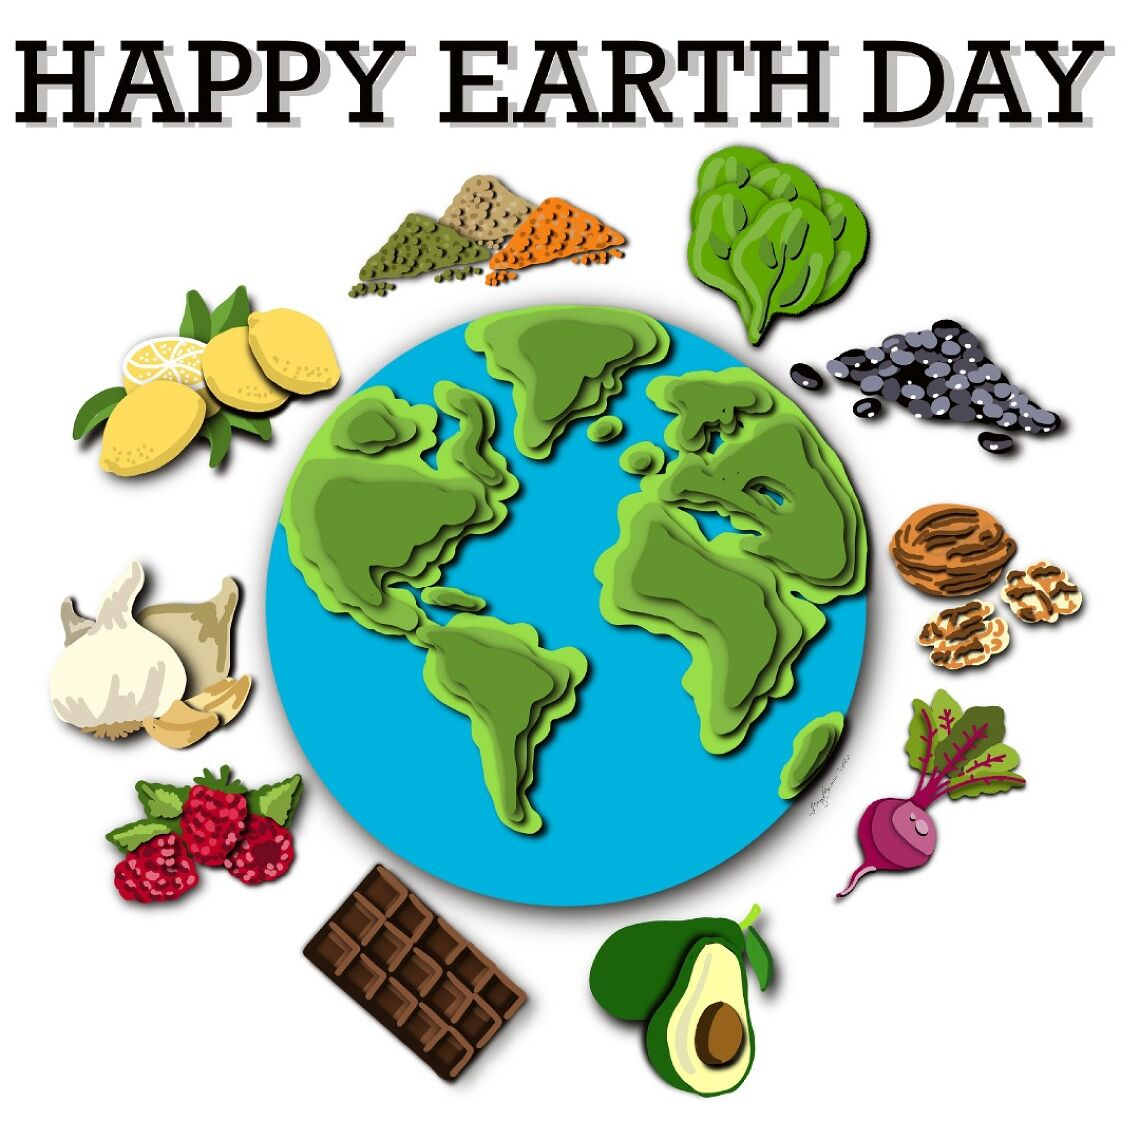 🌎Get Grounded This Earth Day,! Image